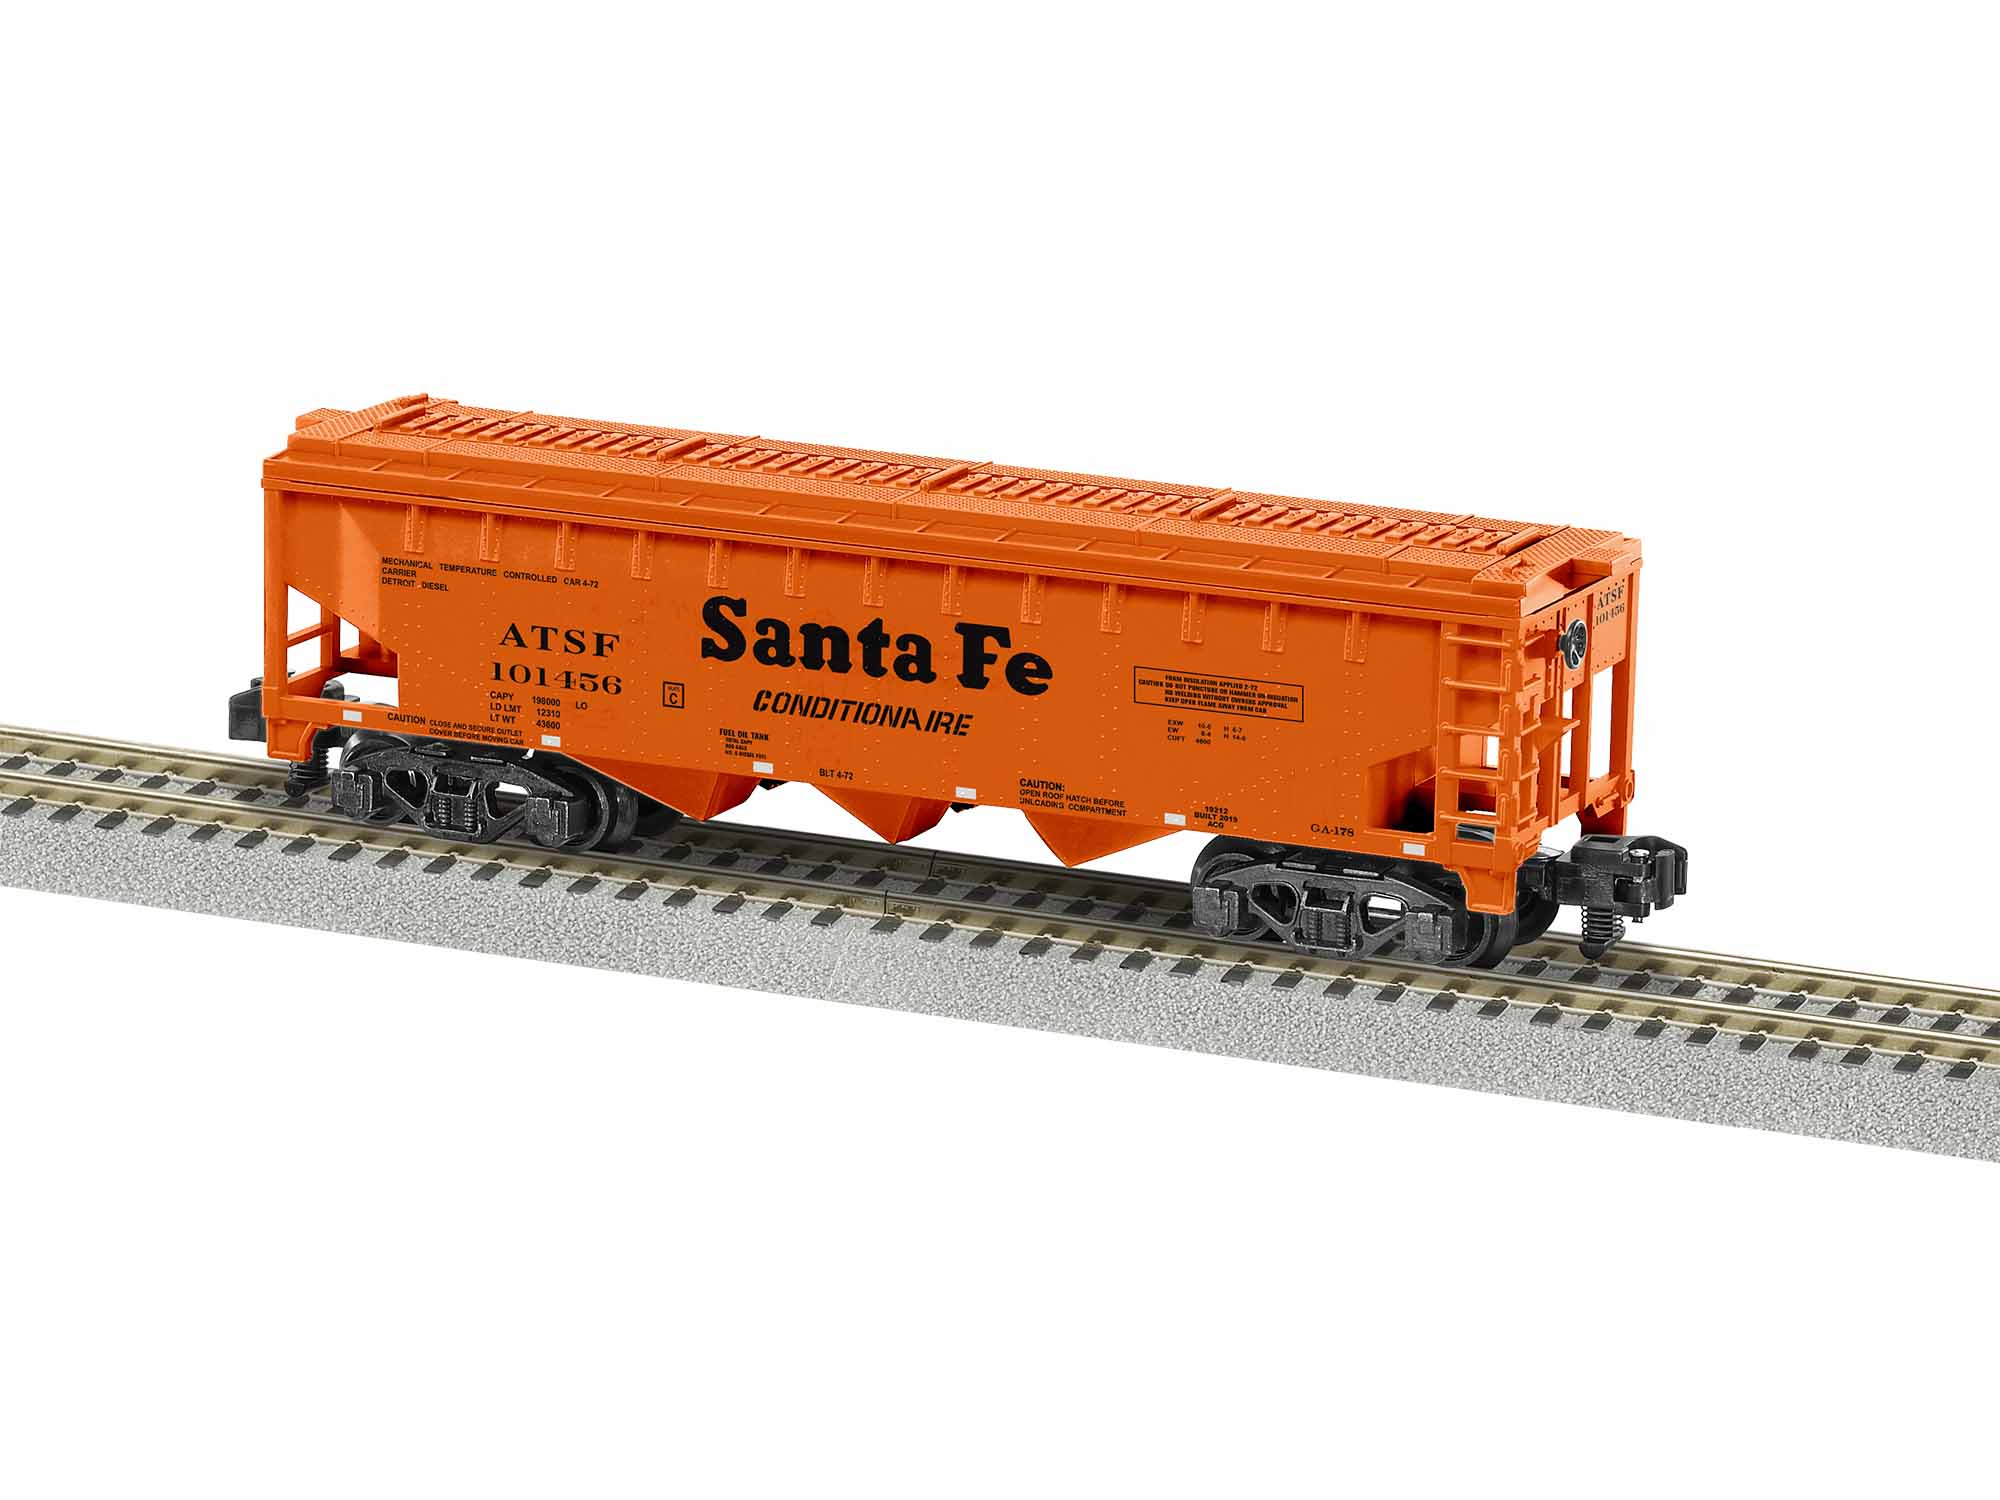 LNL1919212 Lionel S AF 3 Bay Covered Hopper, SF #101456 434-1919212